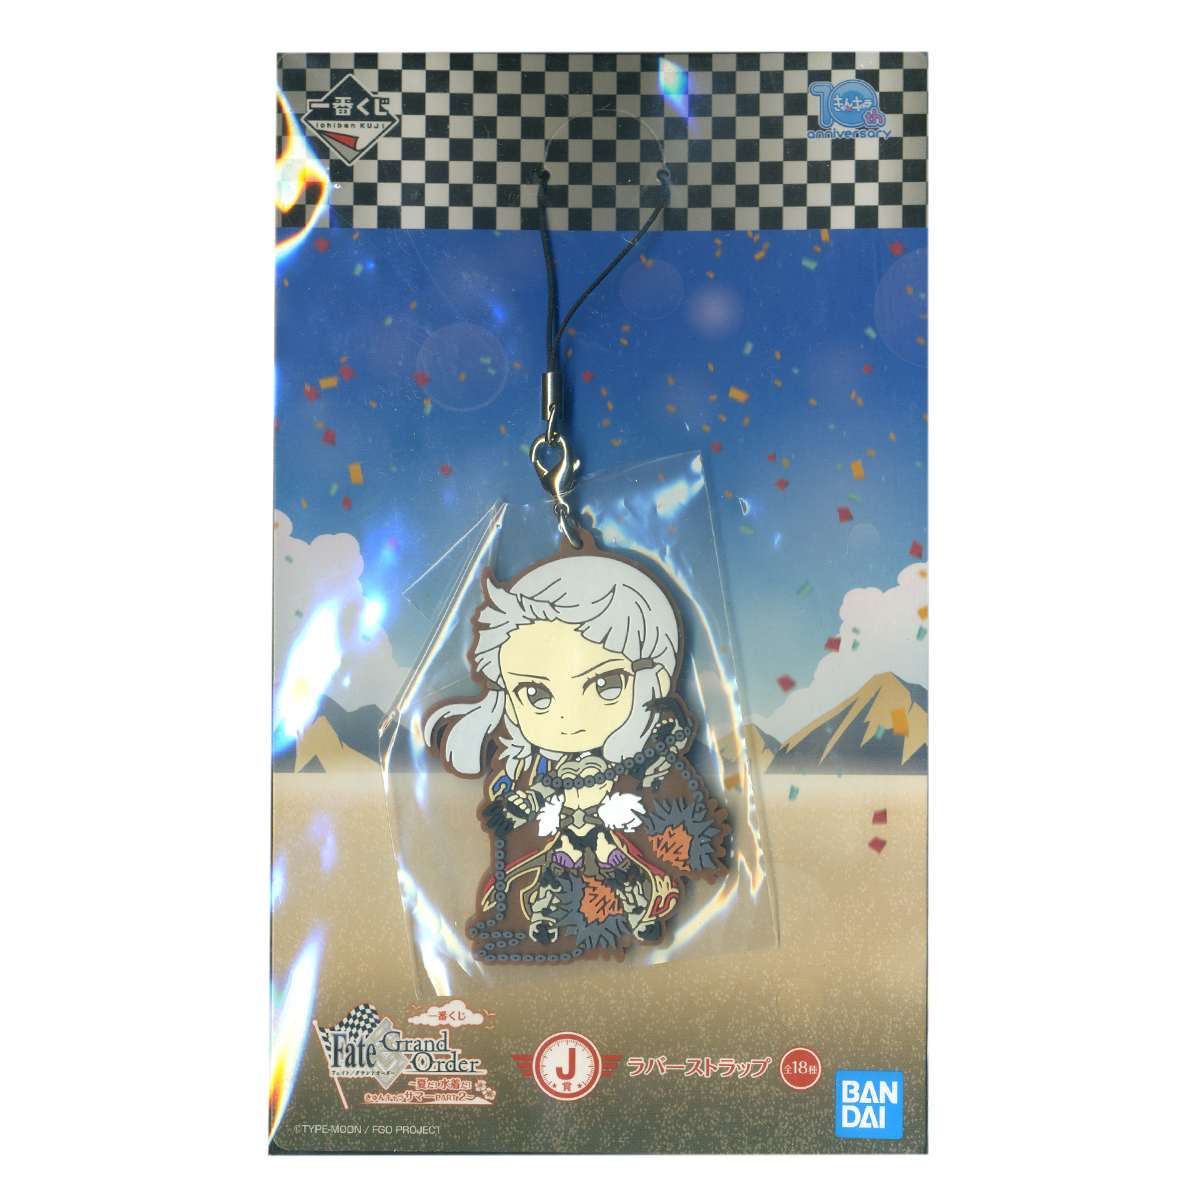 Berserker Penthesilea Rubber Strap Keychain Fate Grand Order J Award Kyun Chara Summer PART 2  Ichiban kuji Lottery Banpresto